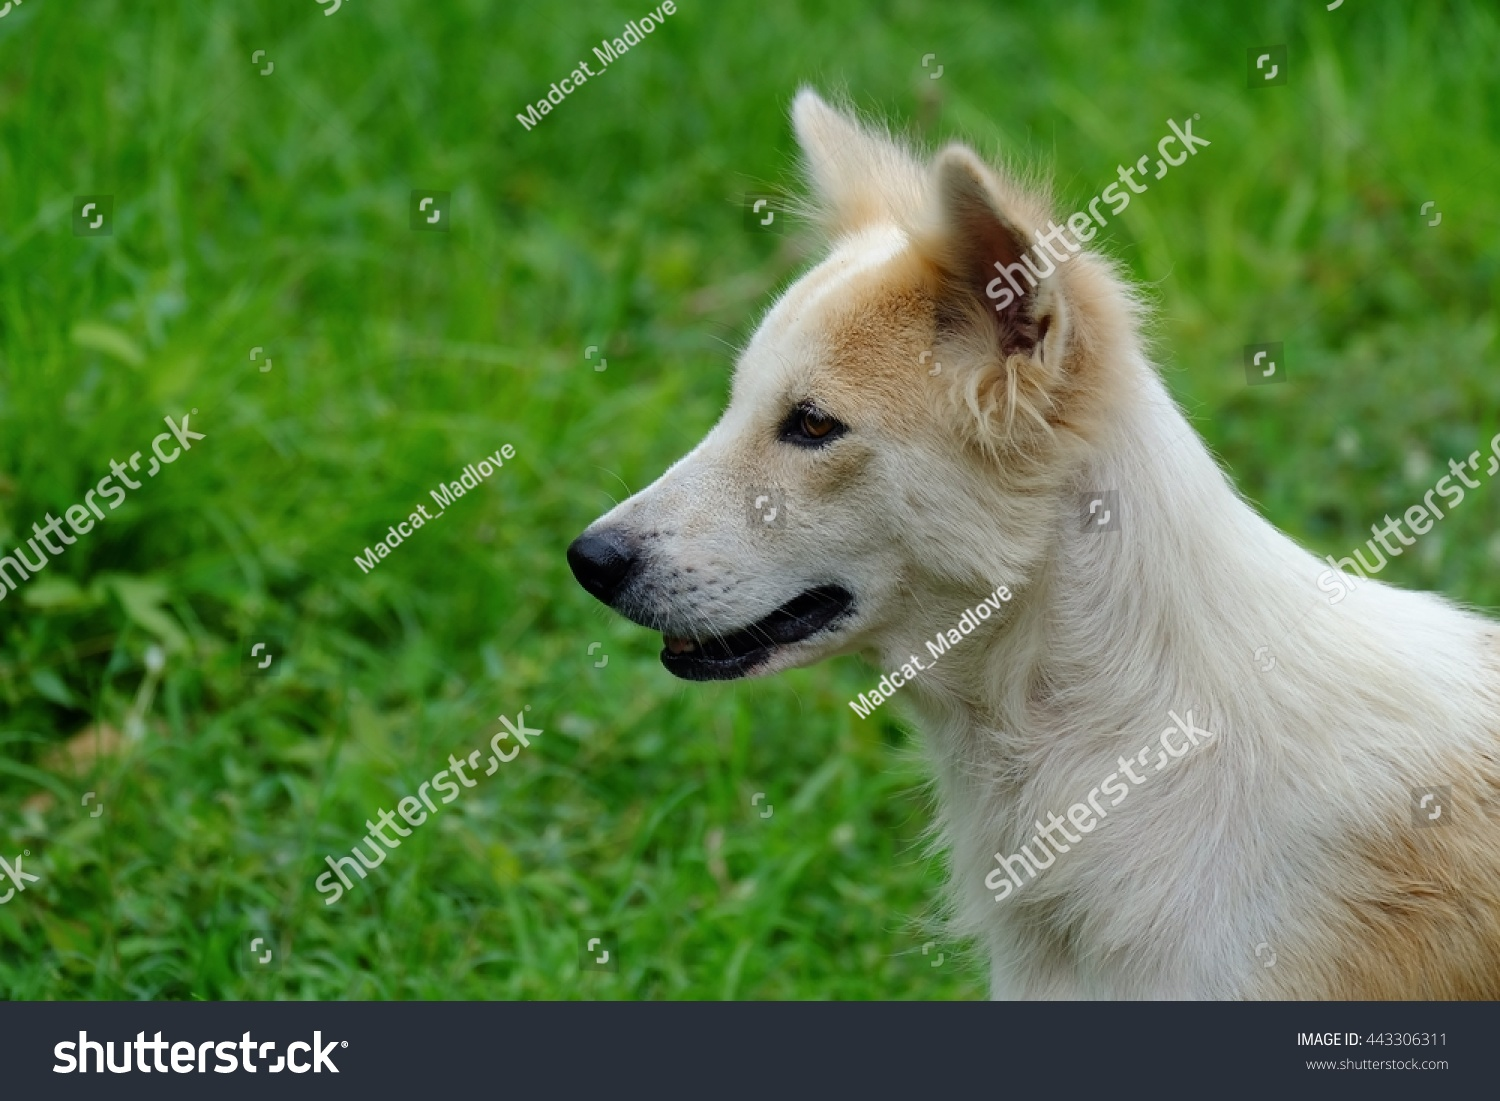 White Cute Dog Nature Wallpaper Background Stock Photo Edit Now 443306311